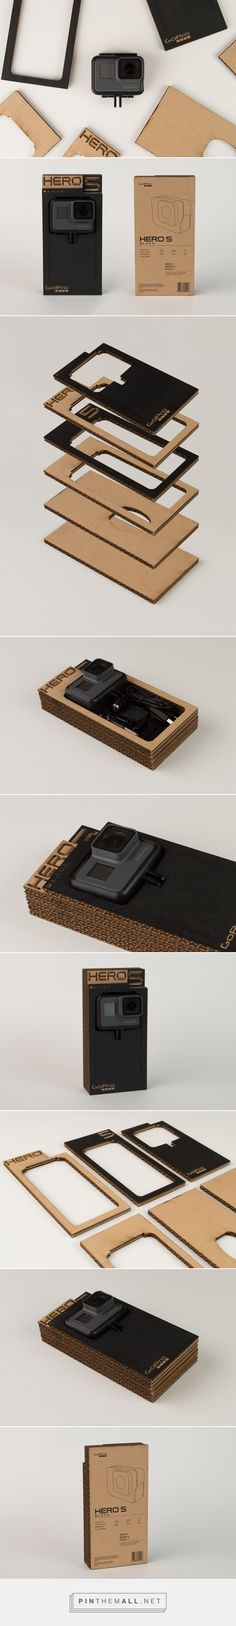 GoPro: Sustainable packaging design concept by Brandon Fretwell - http://www.packagingoftheworld.com/2017/11/gopro-sustainable-packaging.html